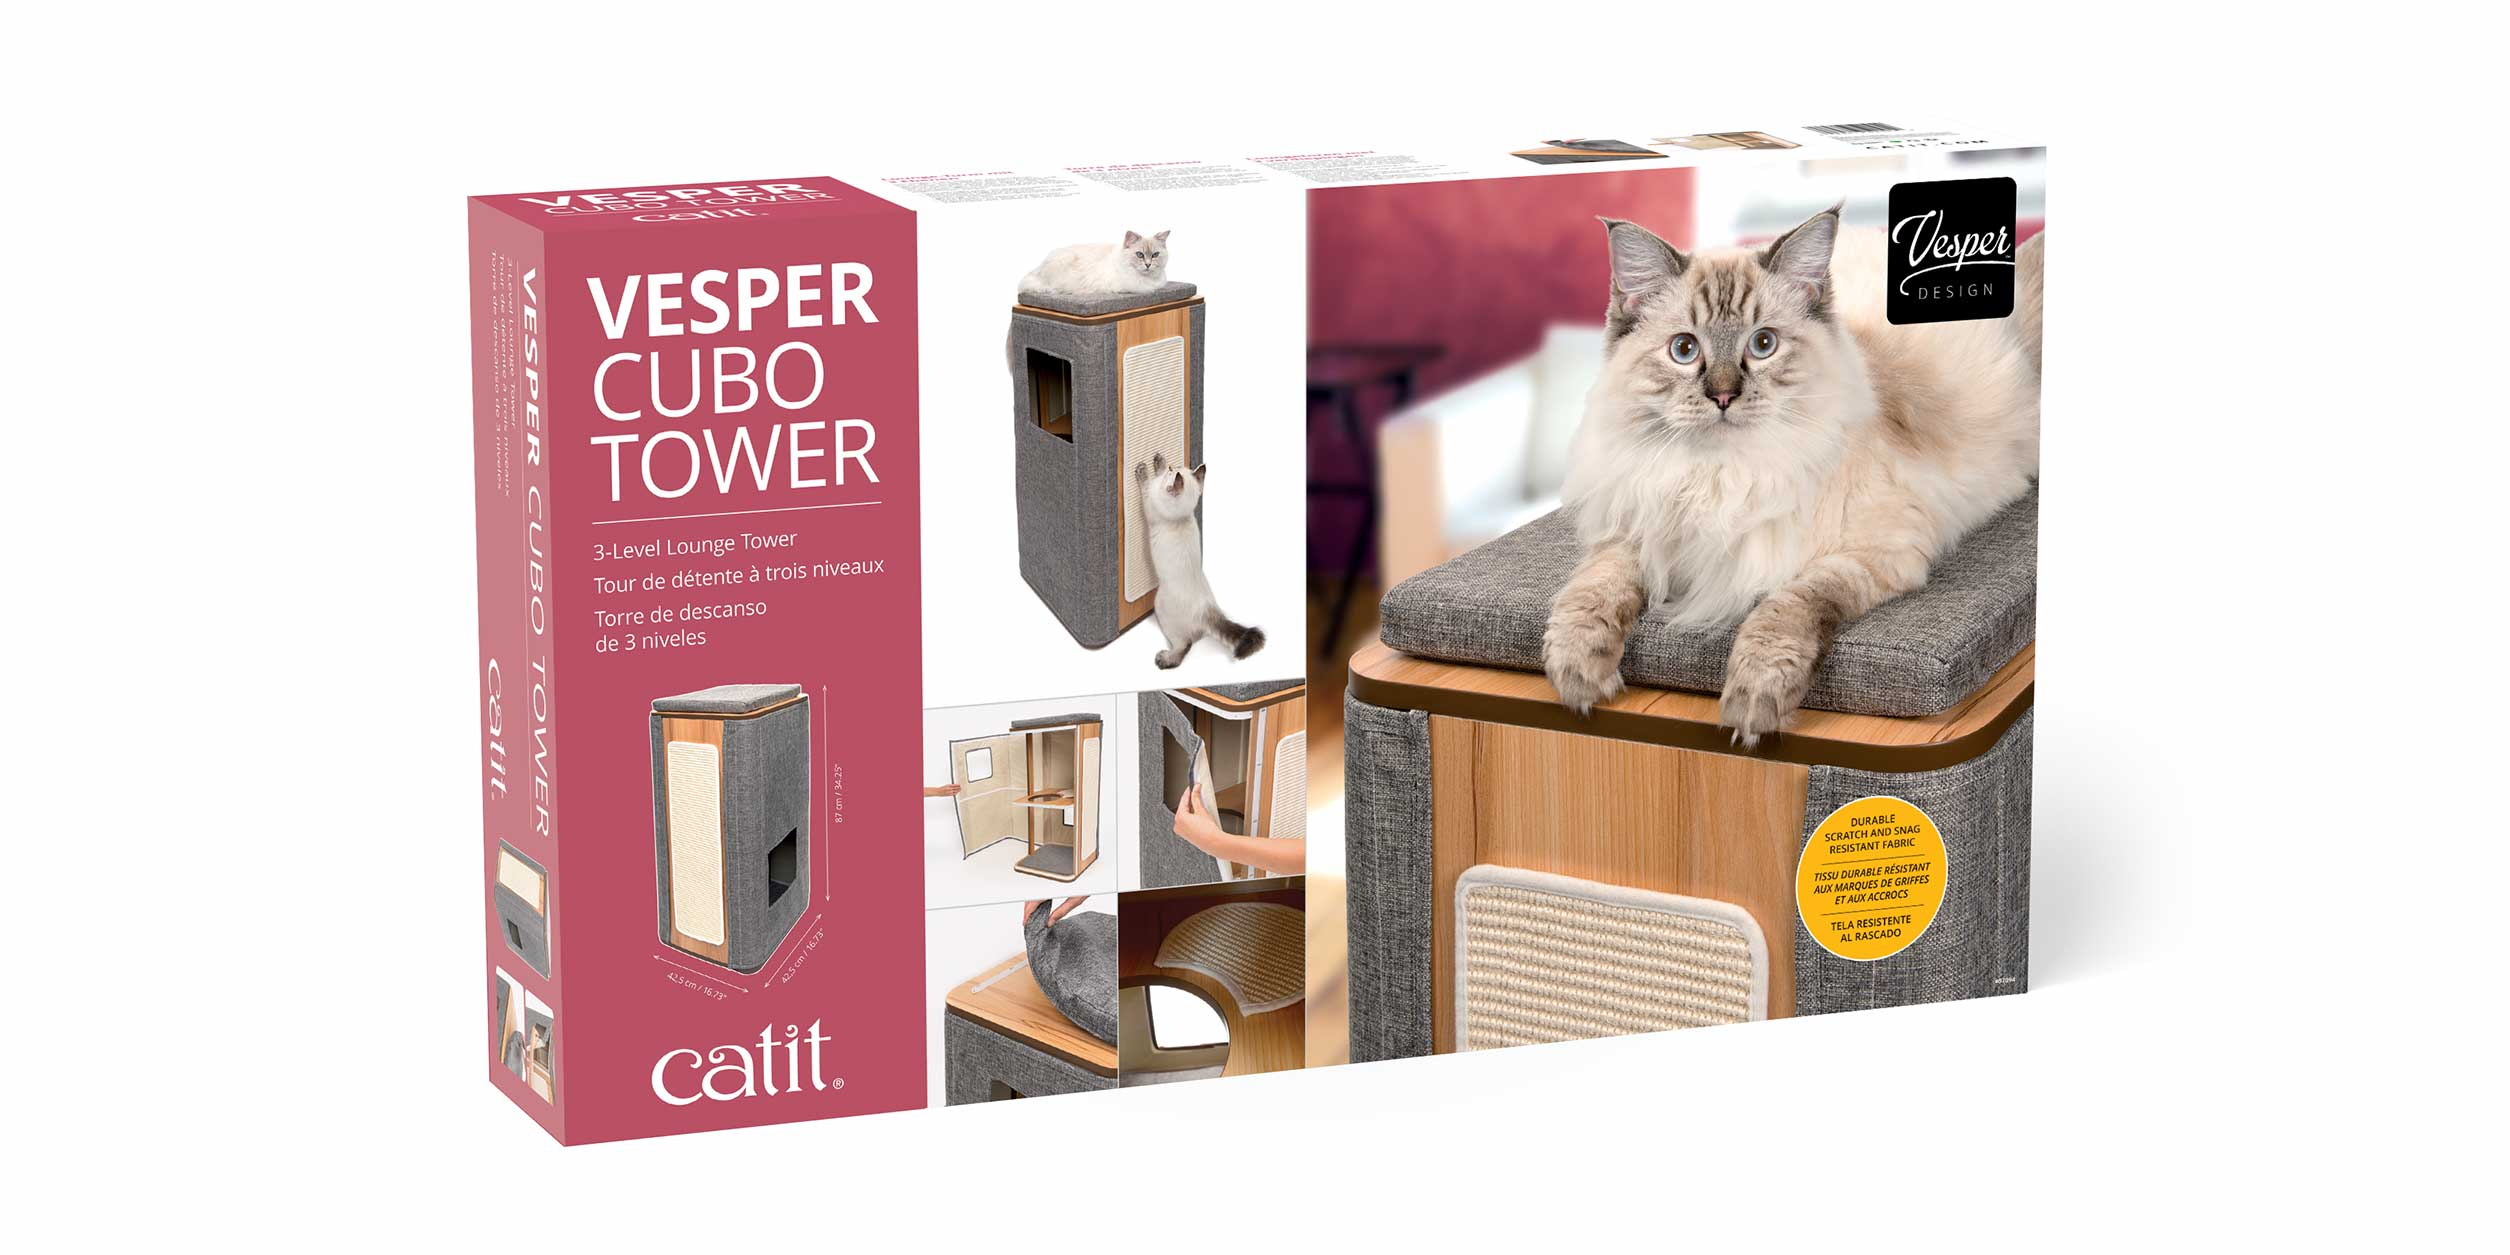 Packaging of the Vesper Cubo Tower